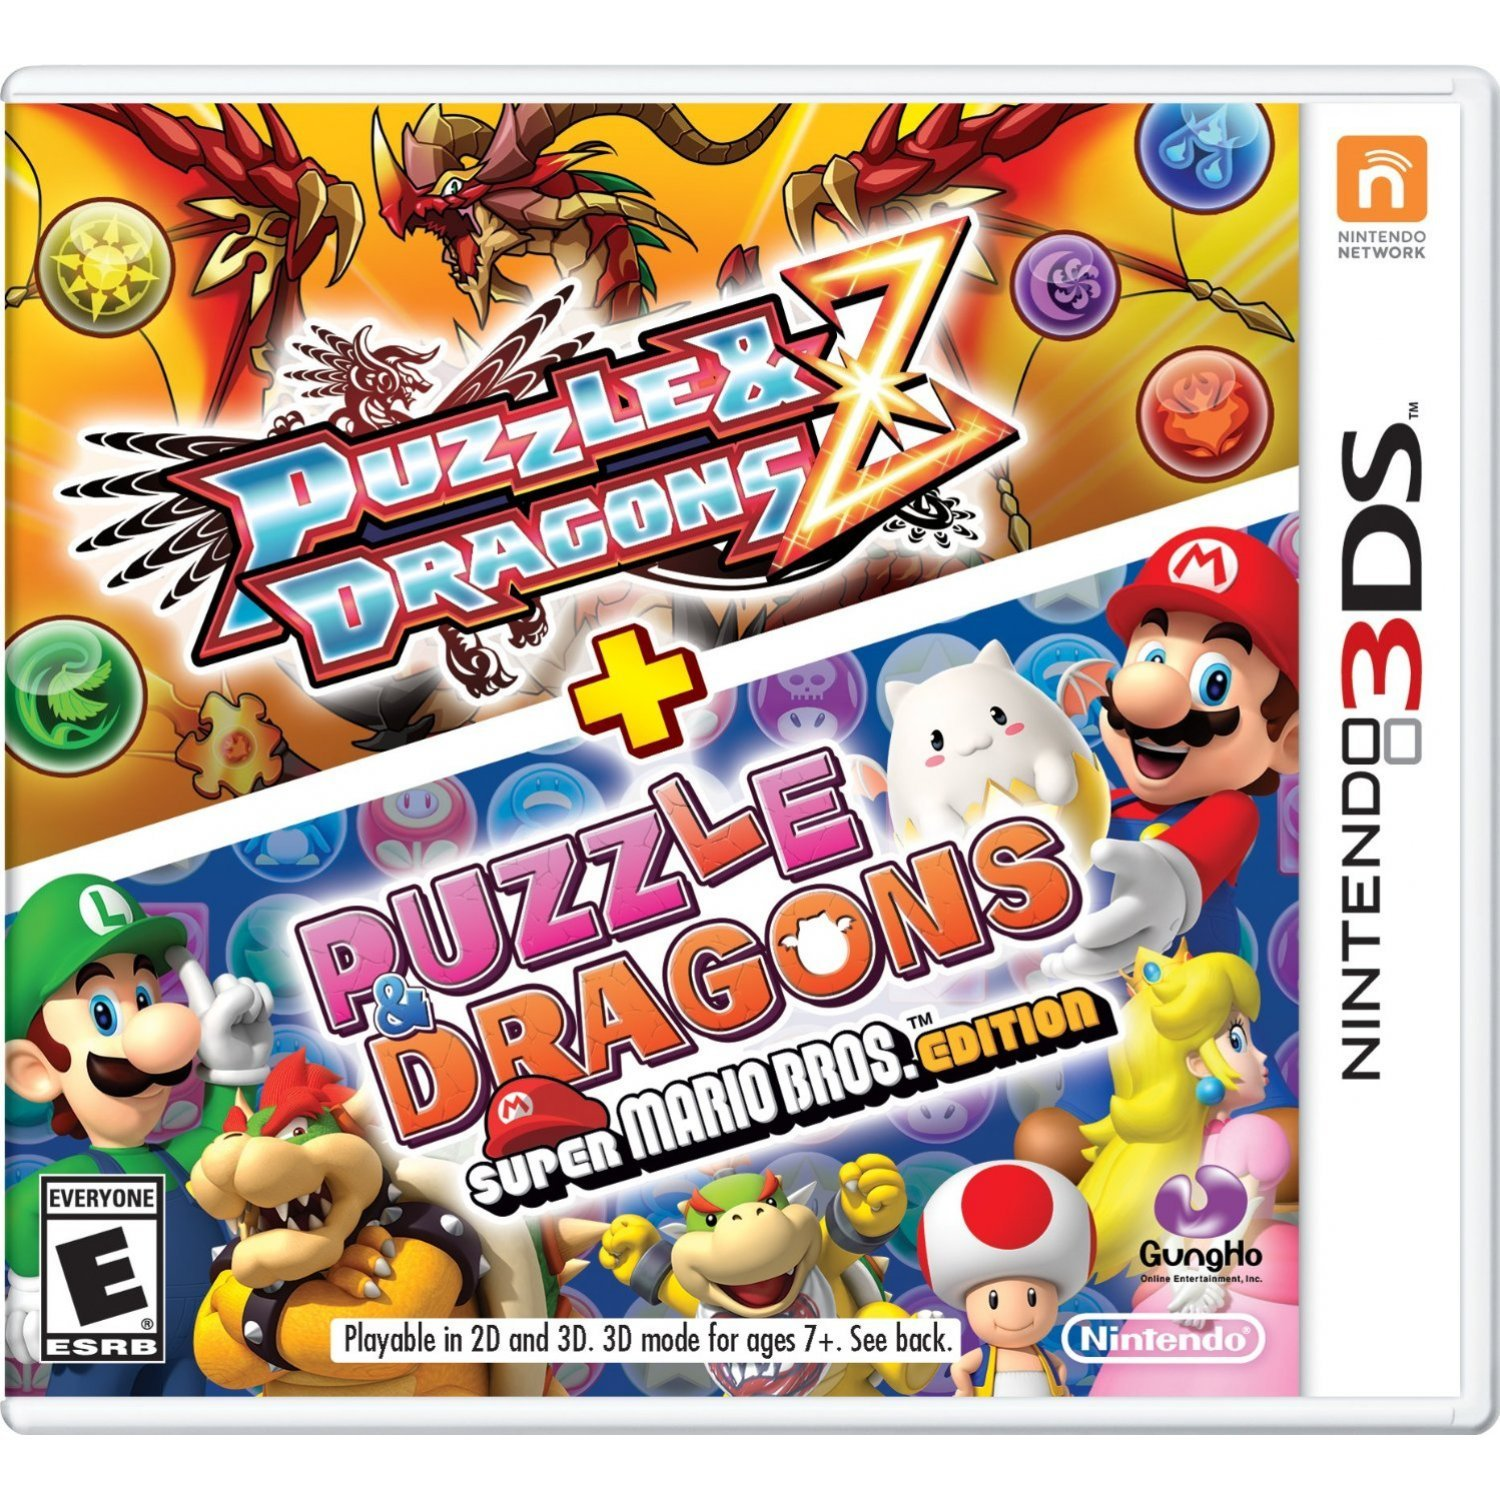 Wonderful Jigsaw Puzzle Epic Tall Thomas Kinkade Puzzles Flat Wheel Of Fortune Bonus Puzzle Wooden Block Puzzle Free Young Word Search Puzzles PinkWord Search Puzzles Online Puzzle \u0026 Dragons Z   Puzzle \u0026 Dragons: Super Mario Bros